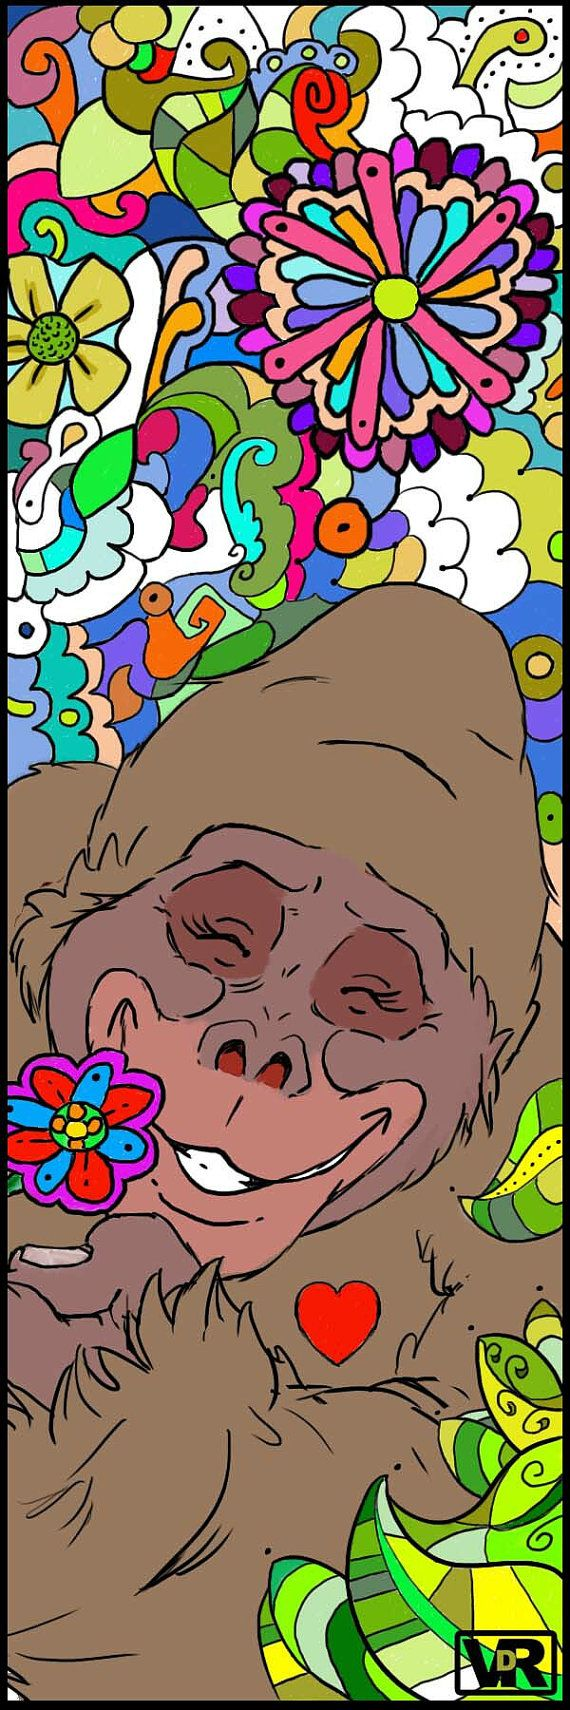 Gorilla Bookmark Adult Coloring By VanDykeRothArt On Etsy ColoringColoring BooksBook ClubsBookmarks